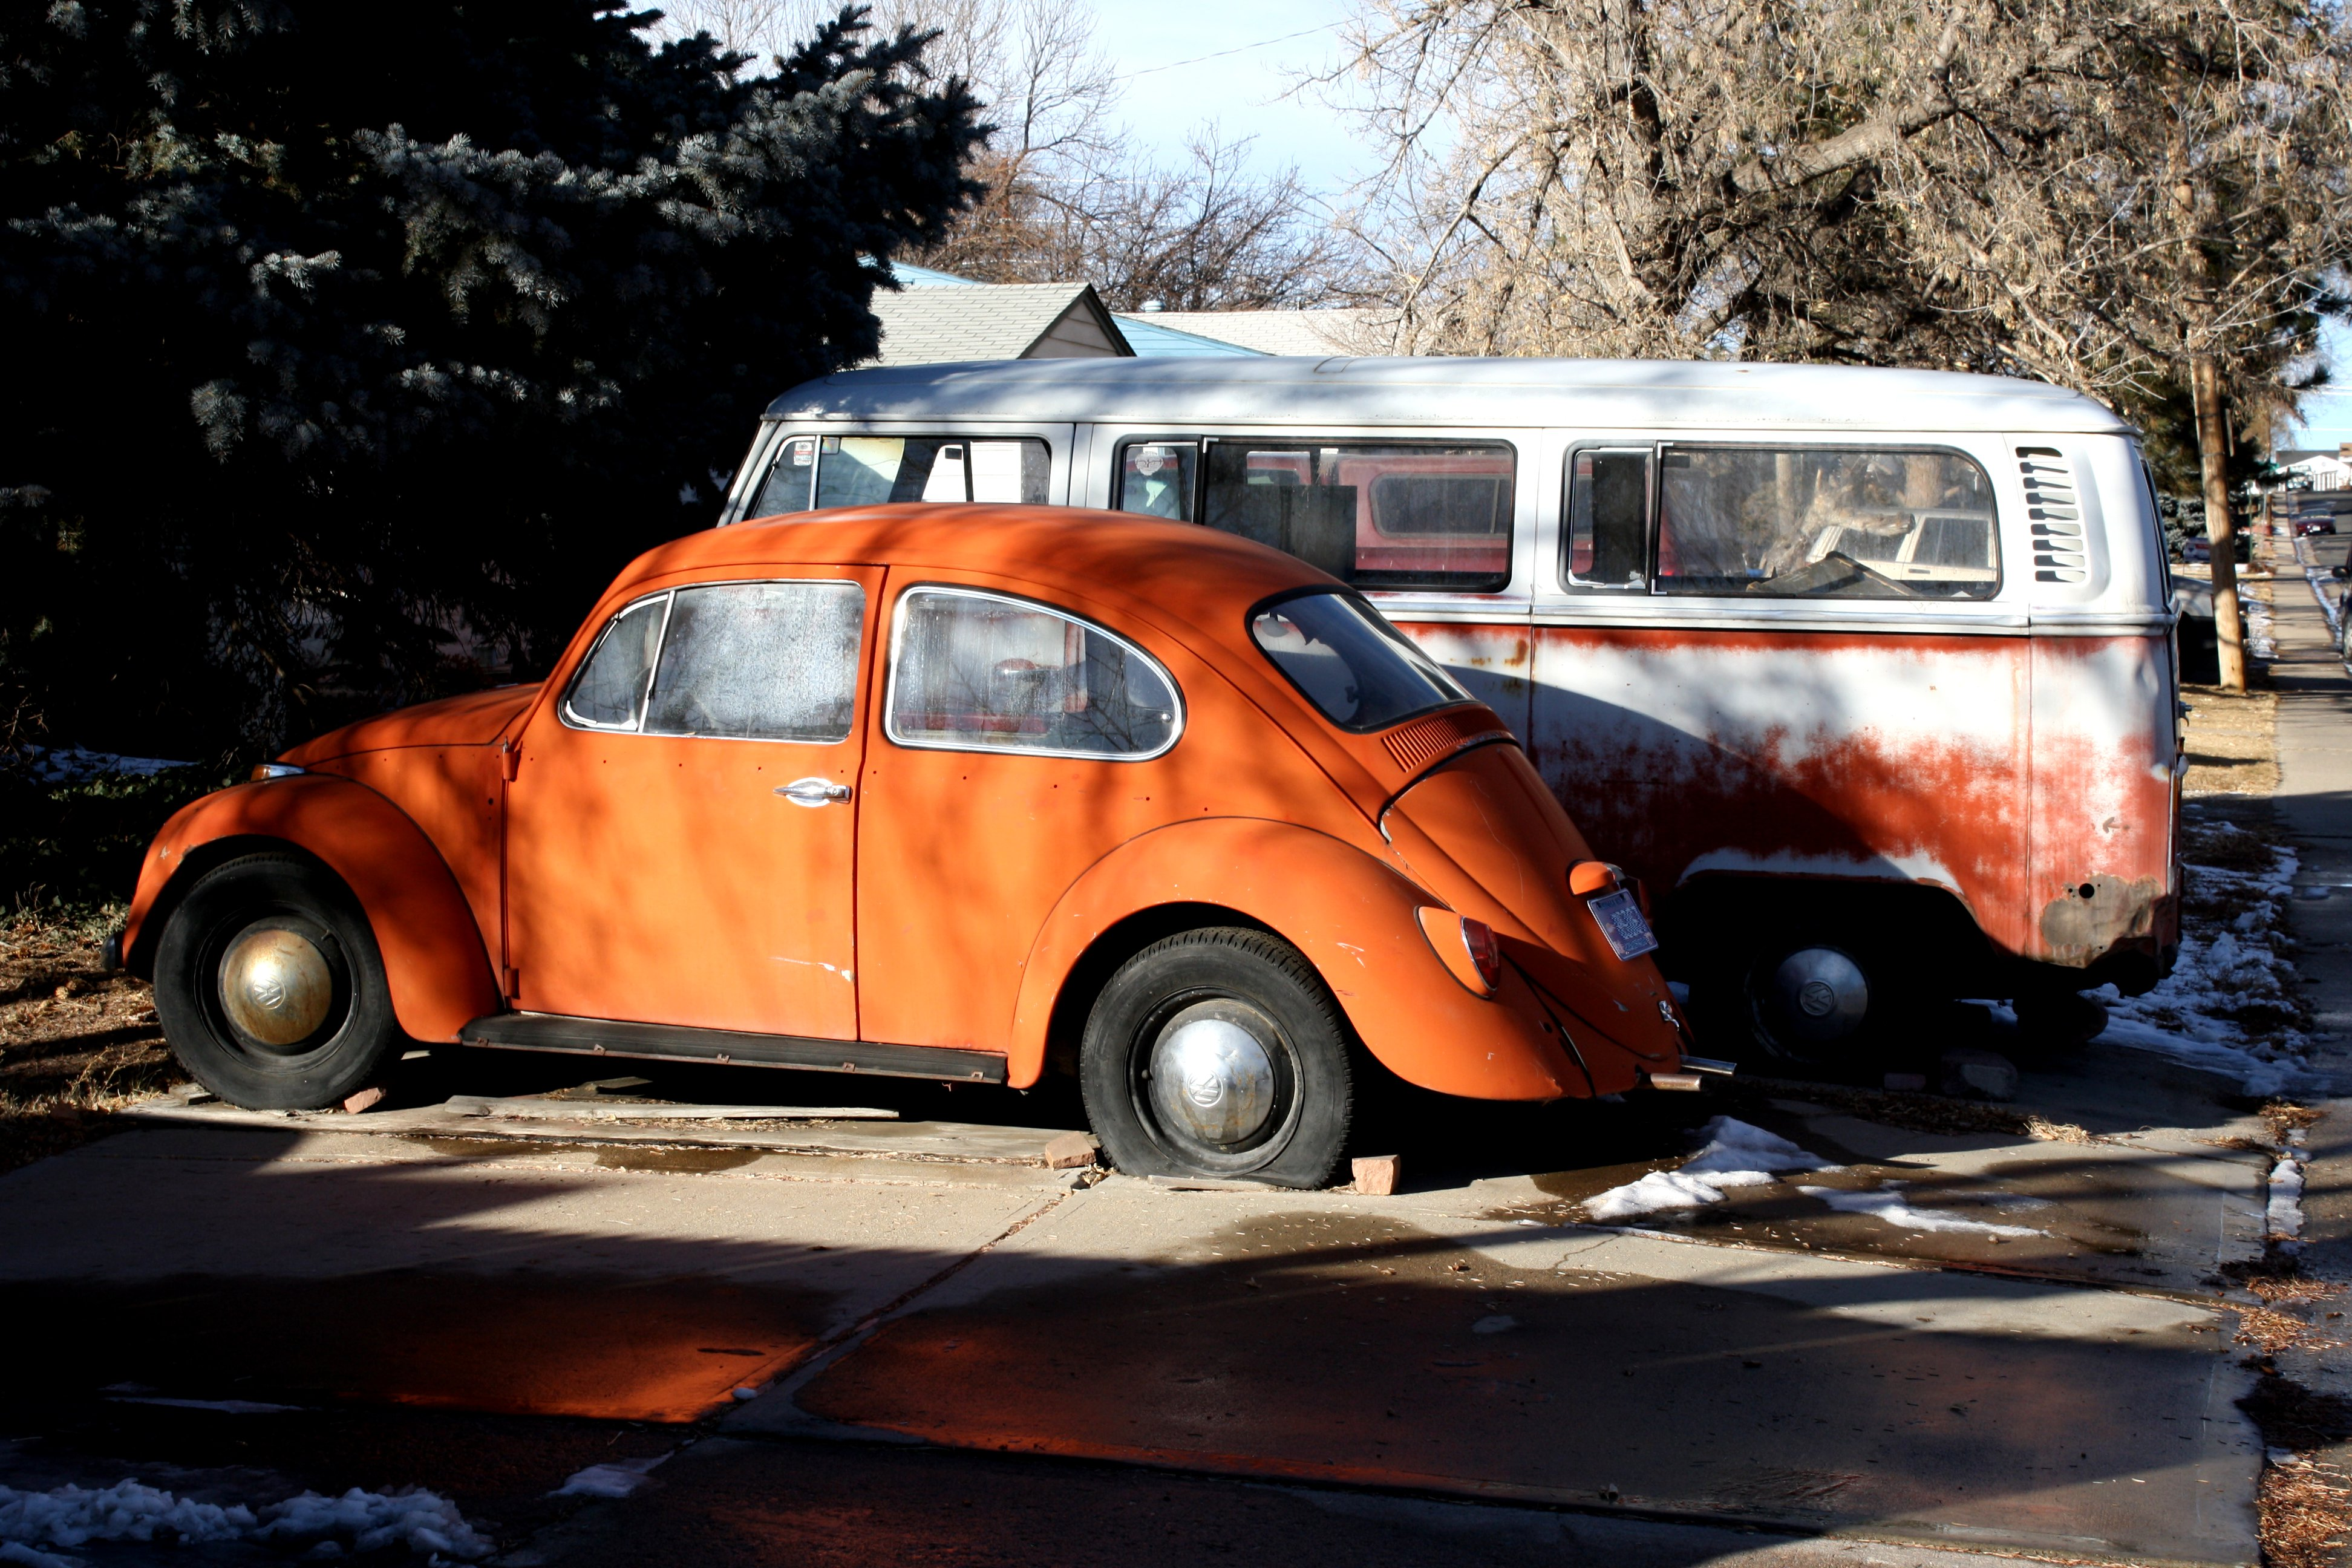 Old Volkswagen Bug and Van Free High Resolution Photo Dimensions